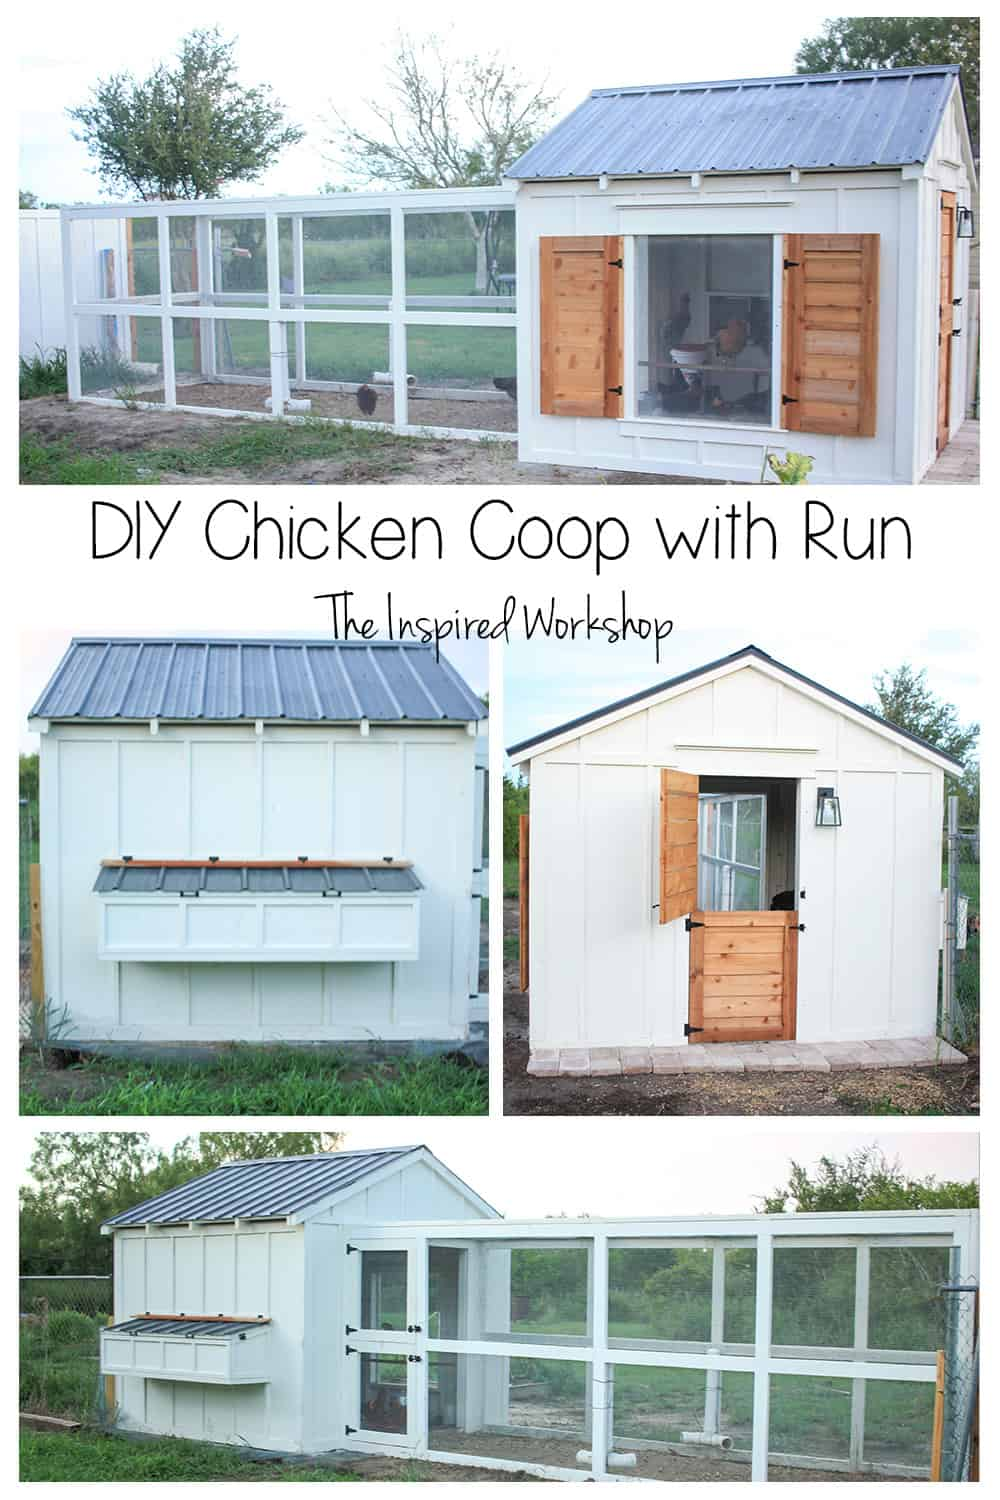 DIY Chicken Coop Run Plans